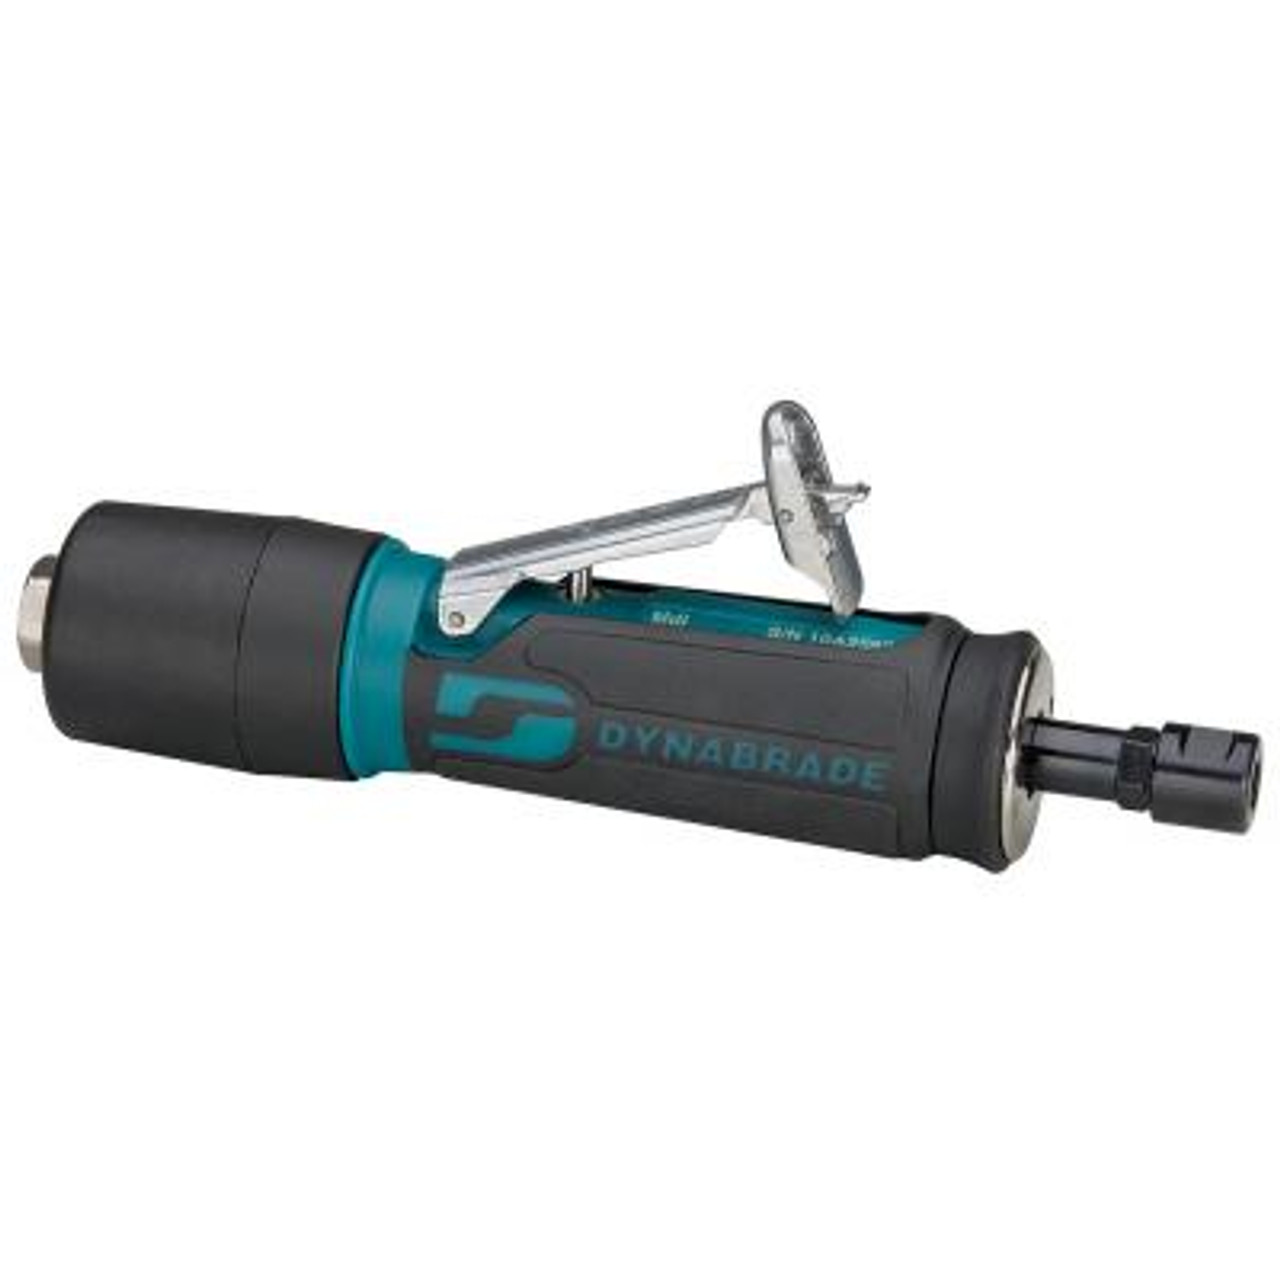 0.4 HP Dynabrade 48315 Right Angle Die Grinder